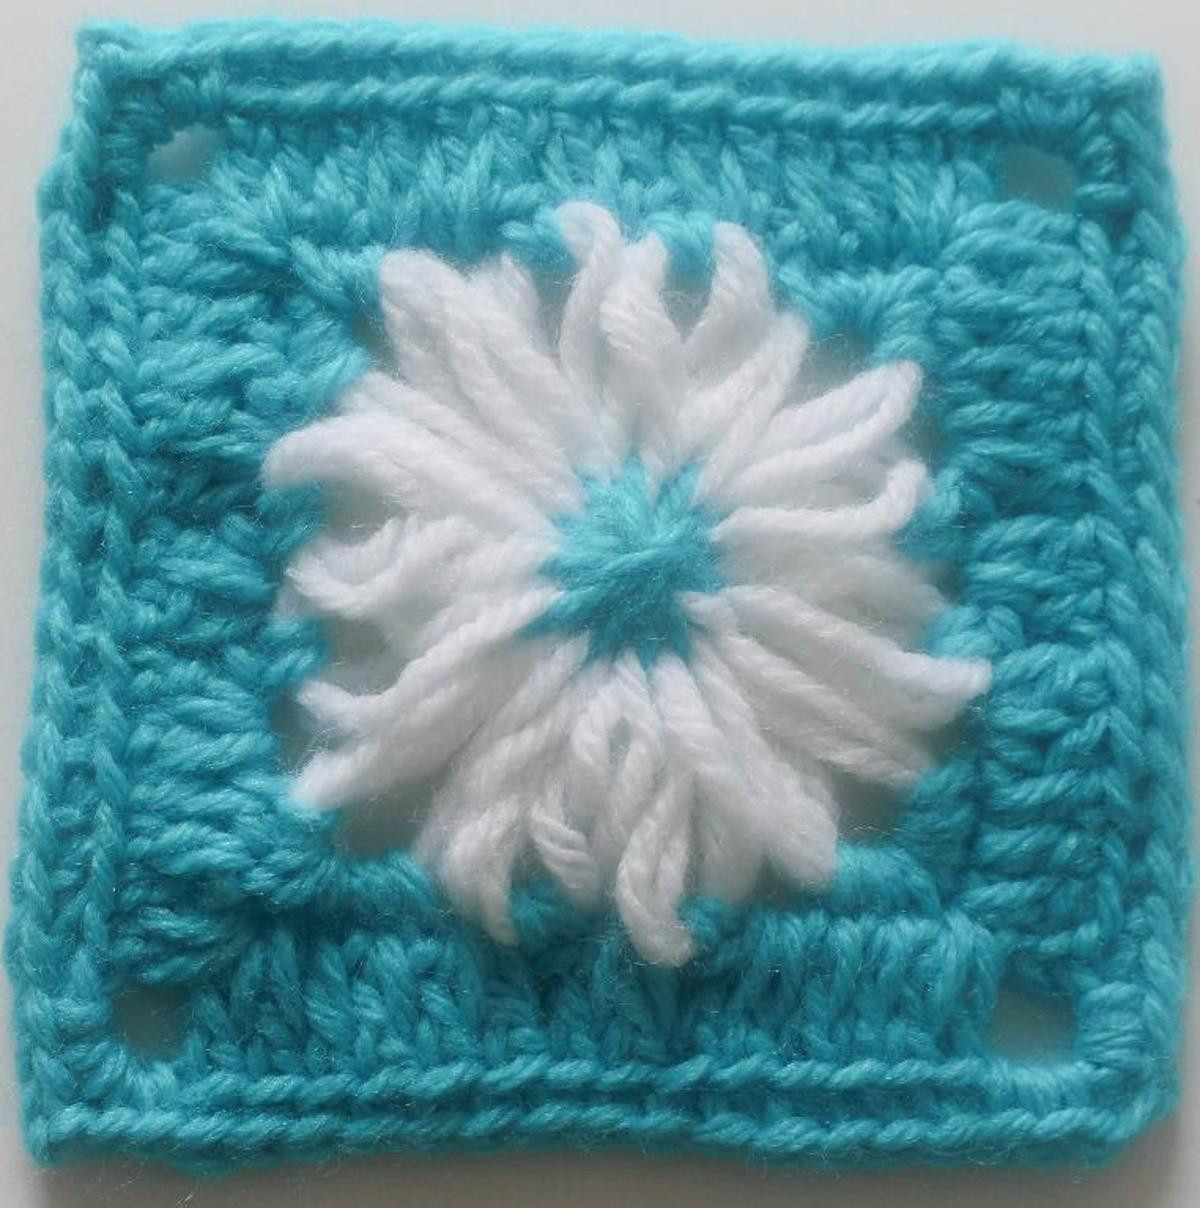 Lovely 10 Flower Granny Square Crochet Patterns to Stitch Granny Square Stitch Of Gorgeous 40 Ideas Granny Square Stitch